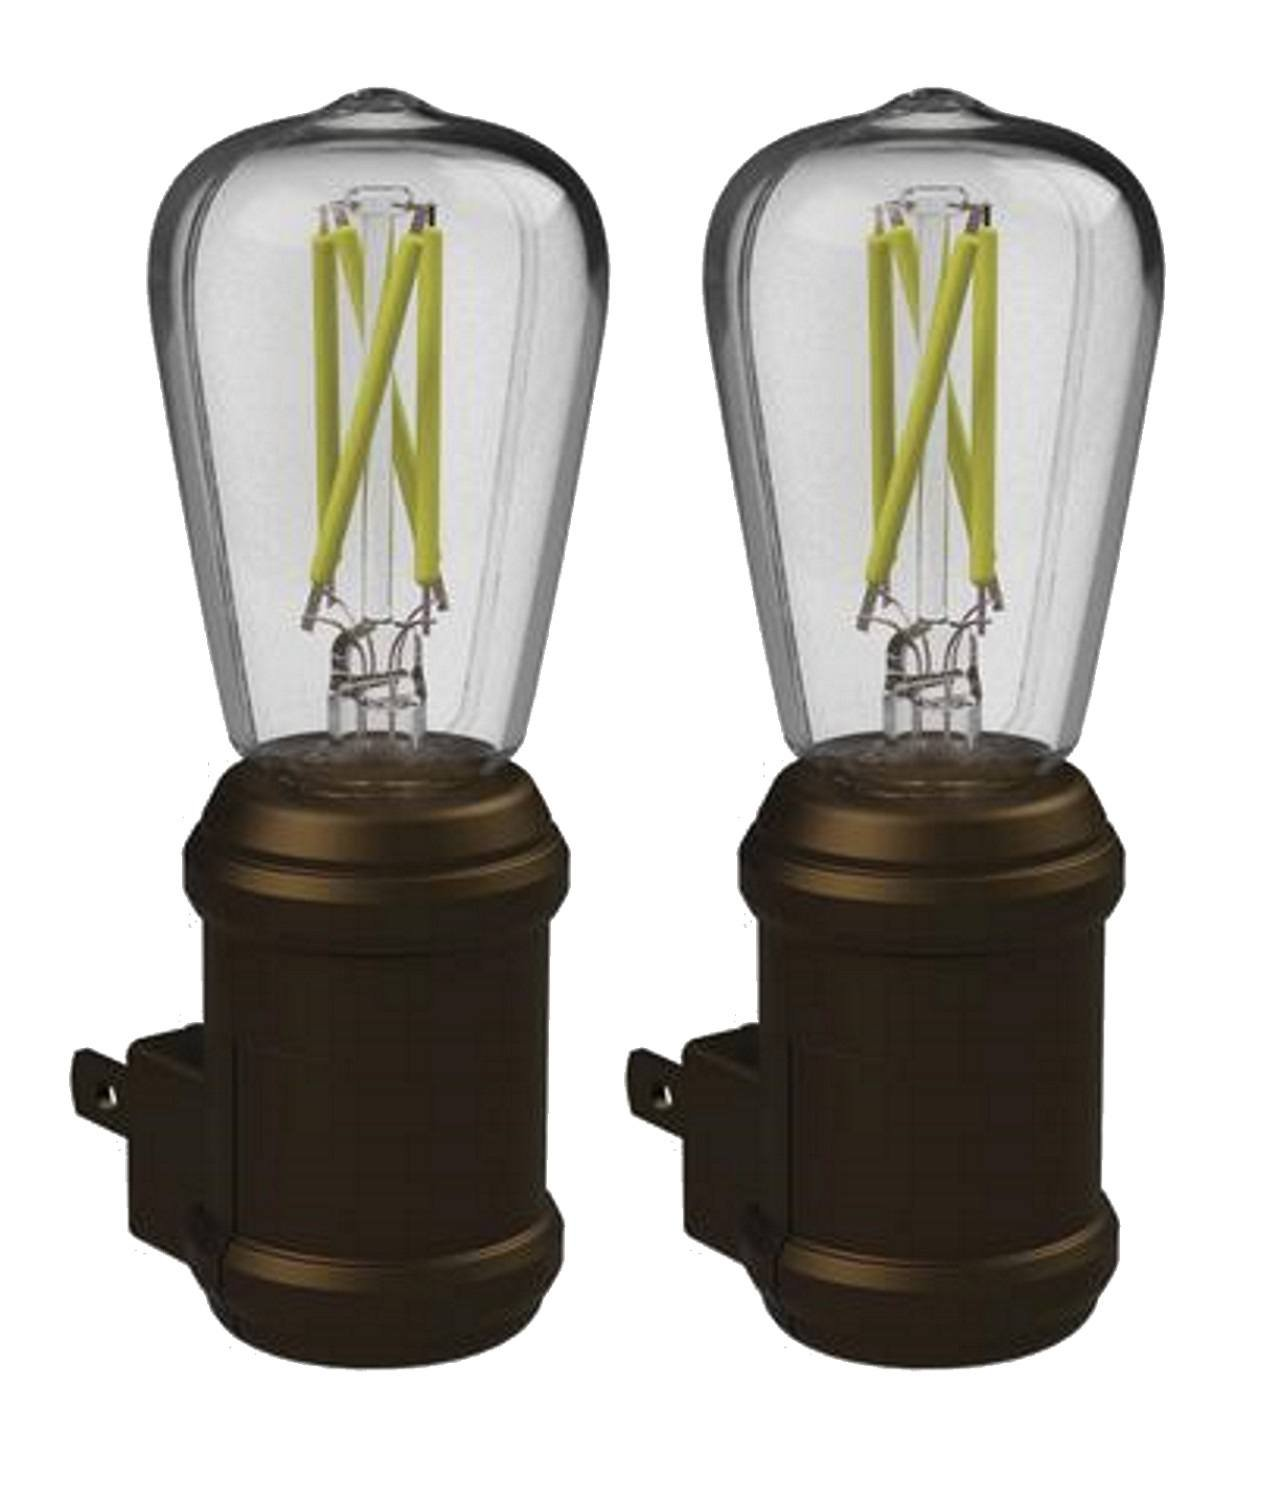 Westek Vintage LED Bulb Night Light - Pack of 2 Edison Filament Old-Fashioned Design Nightlights - Auto Dusk-Dawn Sensor, Outlet Plug-in, Energy Efficient, 25,000 Hours, 8 Lumens – Aged Bronze Finish by Westek